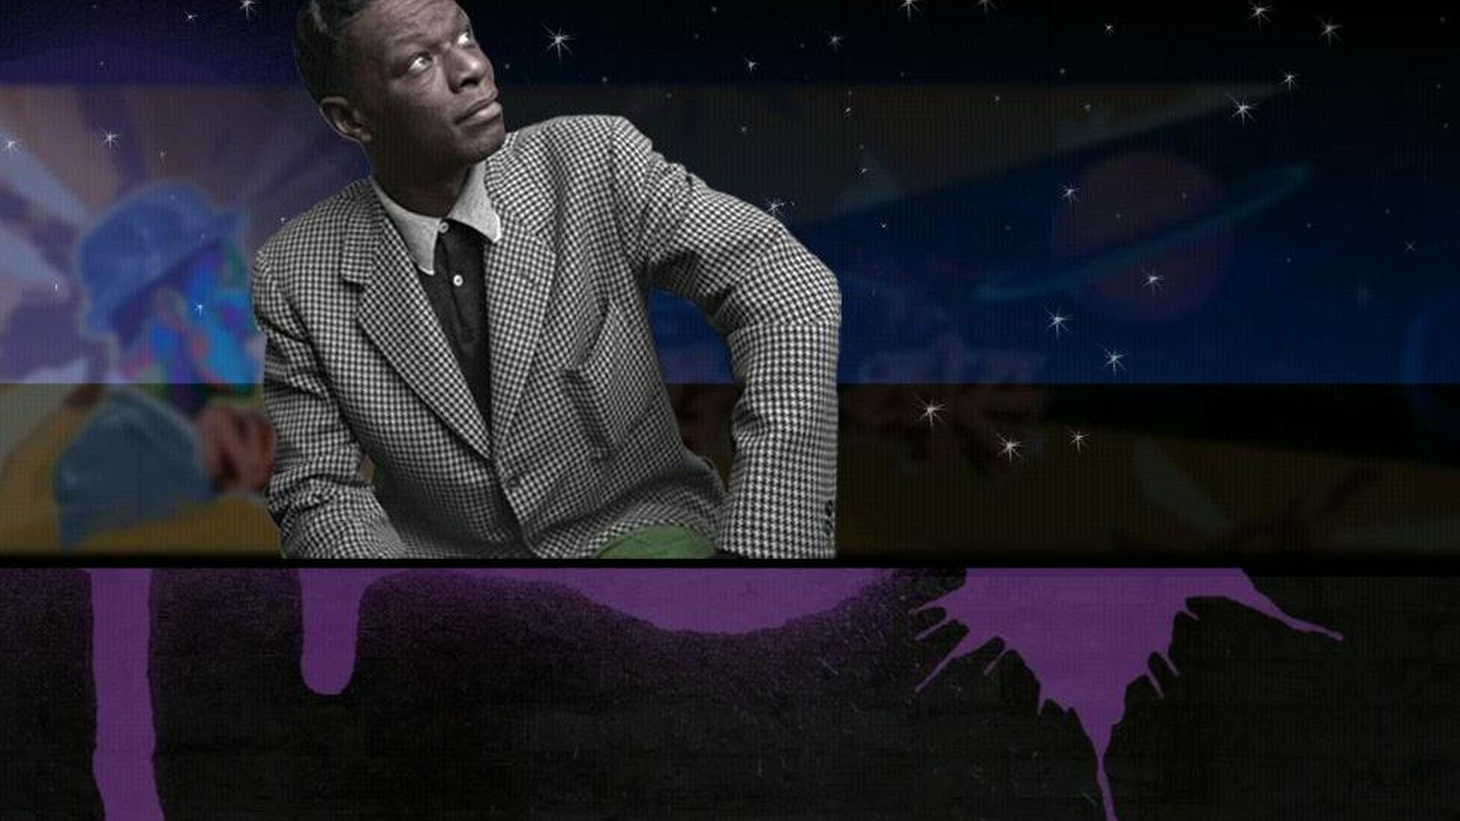 ...from Re: Generations.   Nat King Cole's voice has been an important part of our musical lives. A week shy of what would have been Cole's 90th birthday, we're treated to a fantastic array of remixes from 13 innovative producers.